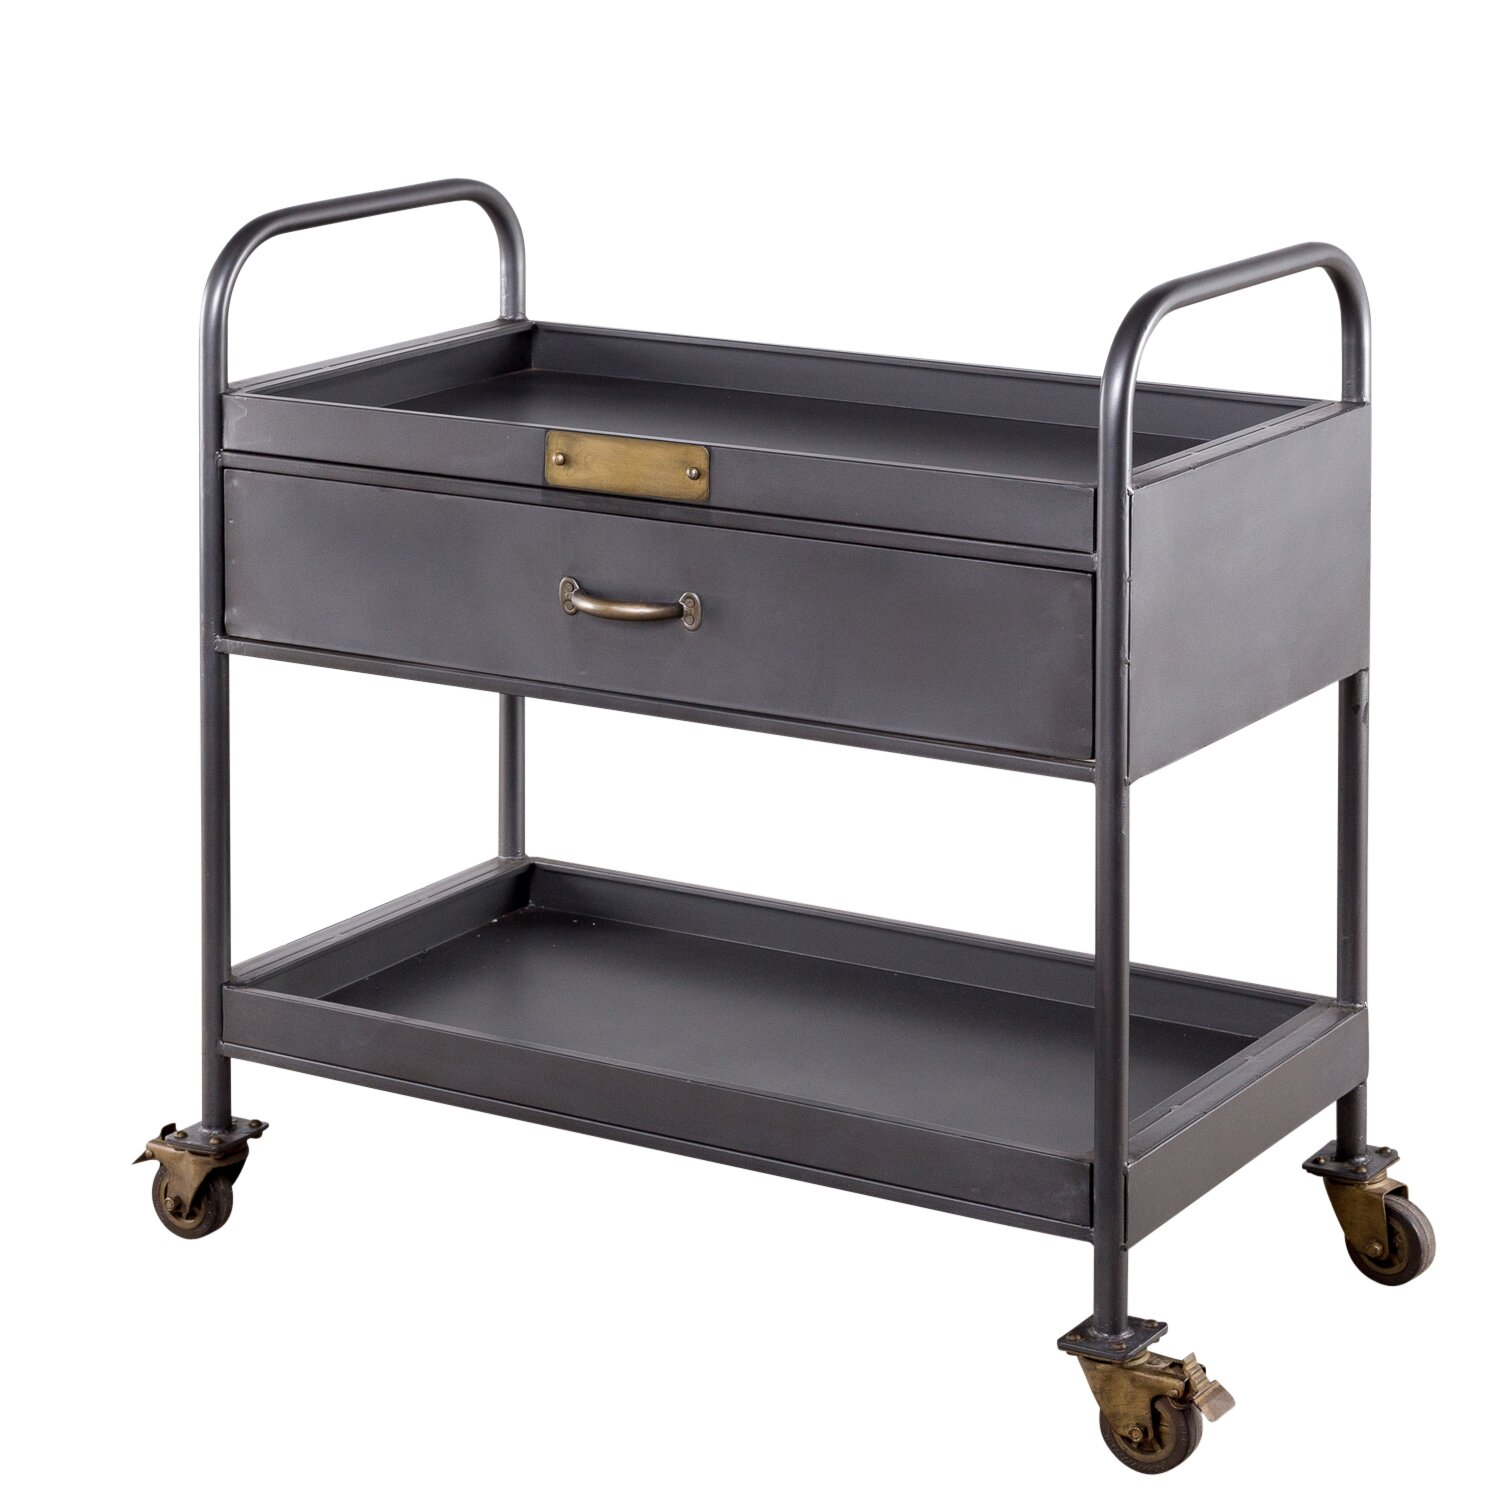 Wildon home hobart bar serving cart wayfair